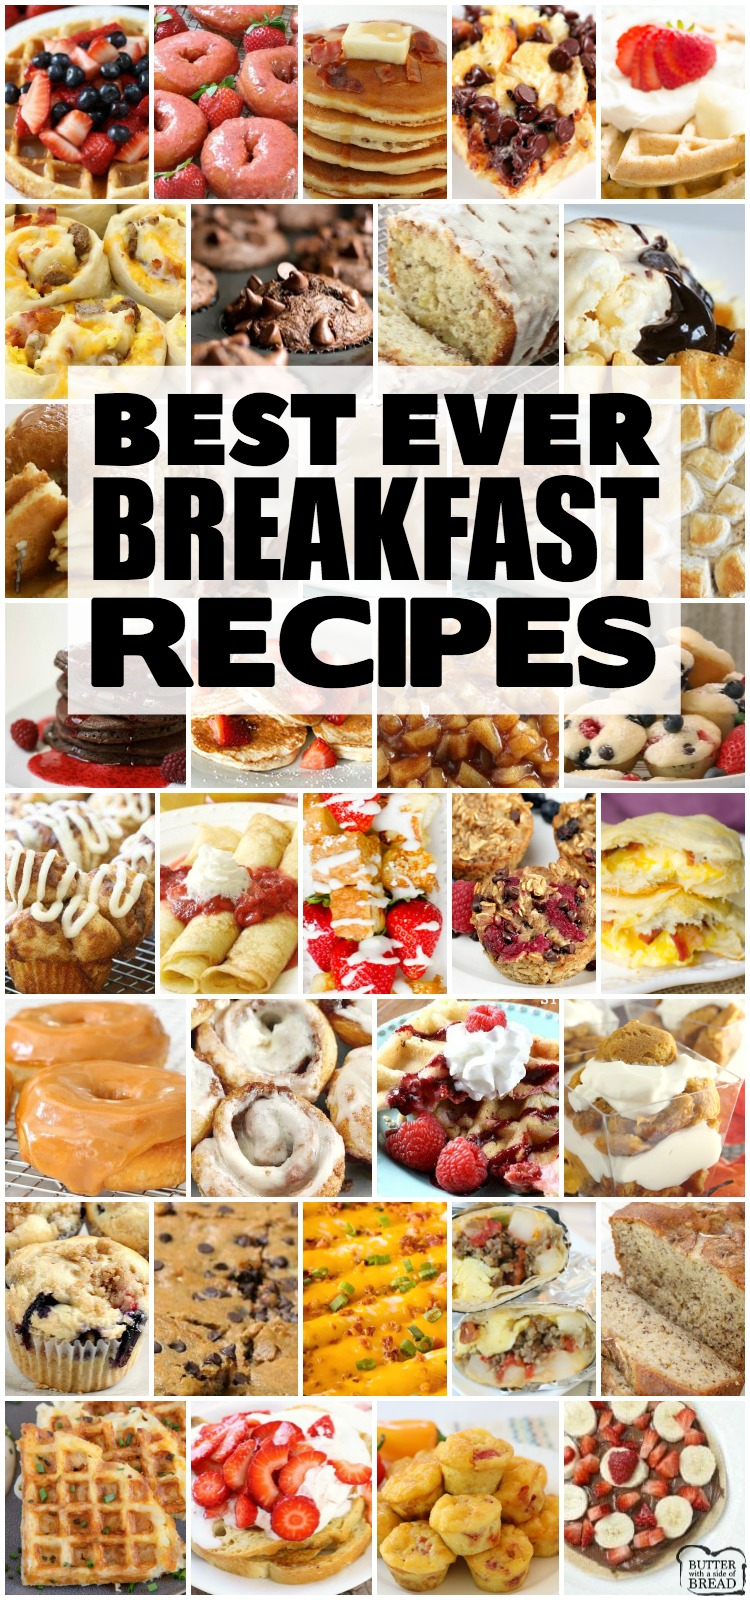 Best Breakfast recipes for anyone who loves breakfast foods! Wide variety of breakfast choices- sweet, savory, breakfast for a crowd or breakfast for two!Pancakes, bacon, breakfast casseroles, muffins, donuts- the most updated, comprehensive collection of breakfast recipes ever! #breakfast #pancakes #bacon #eggs #breakfasts #recipes from BUTTER WITH A SIDE OF BREAD